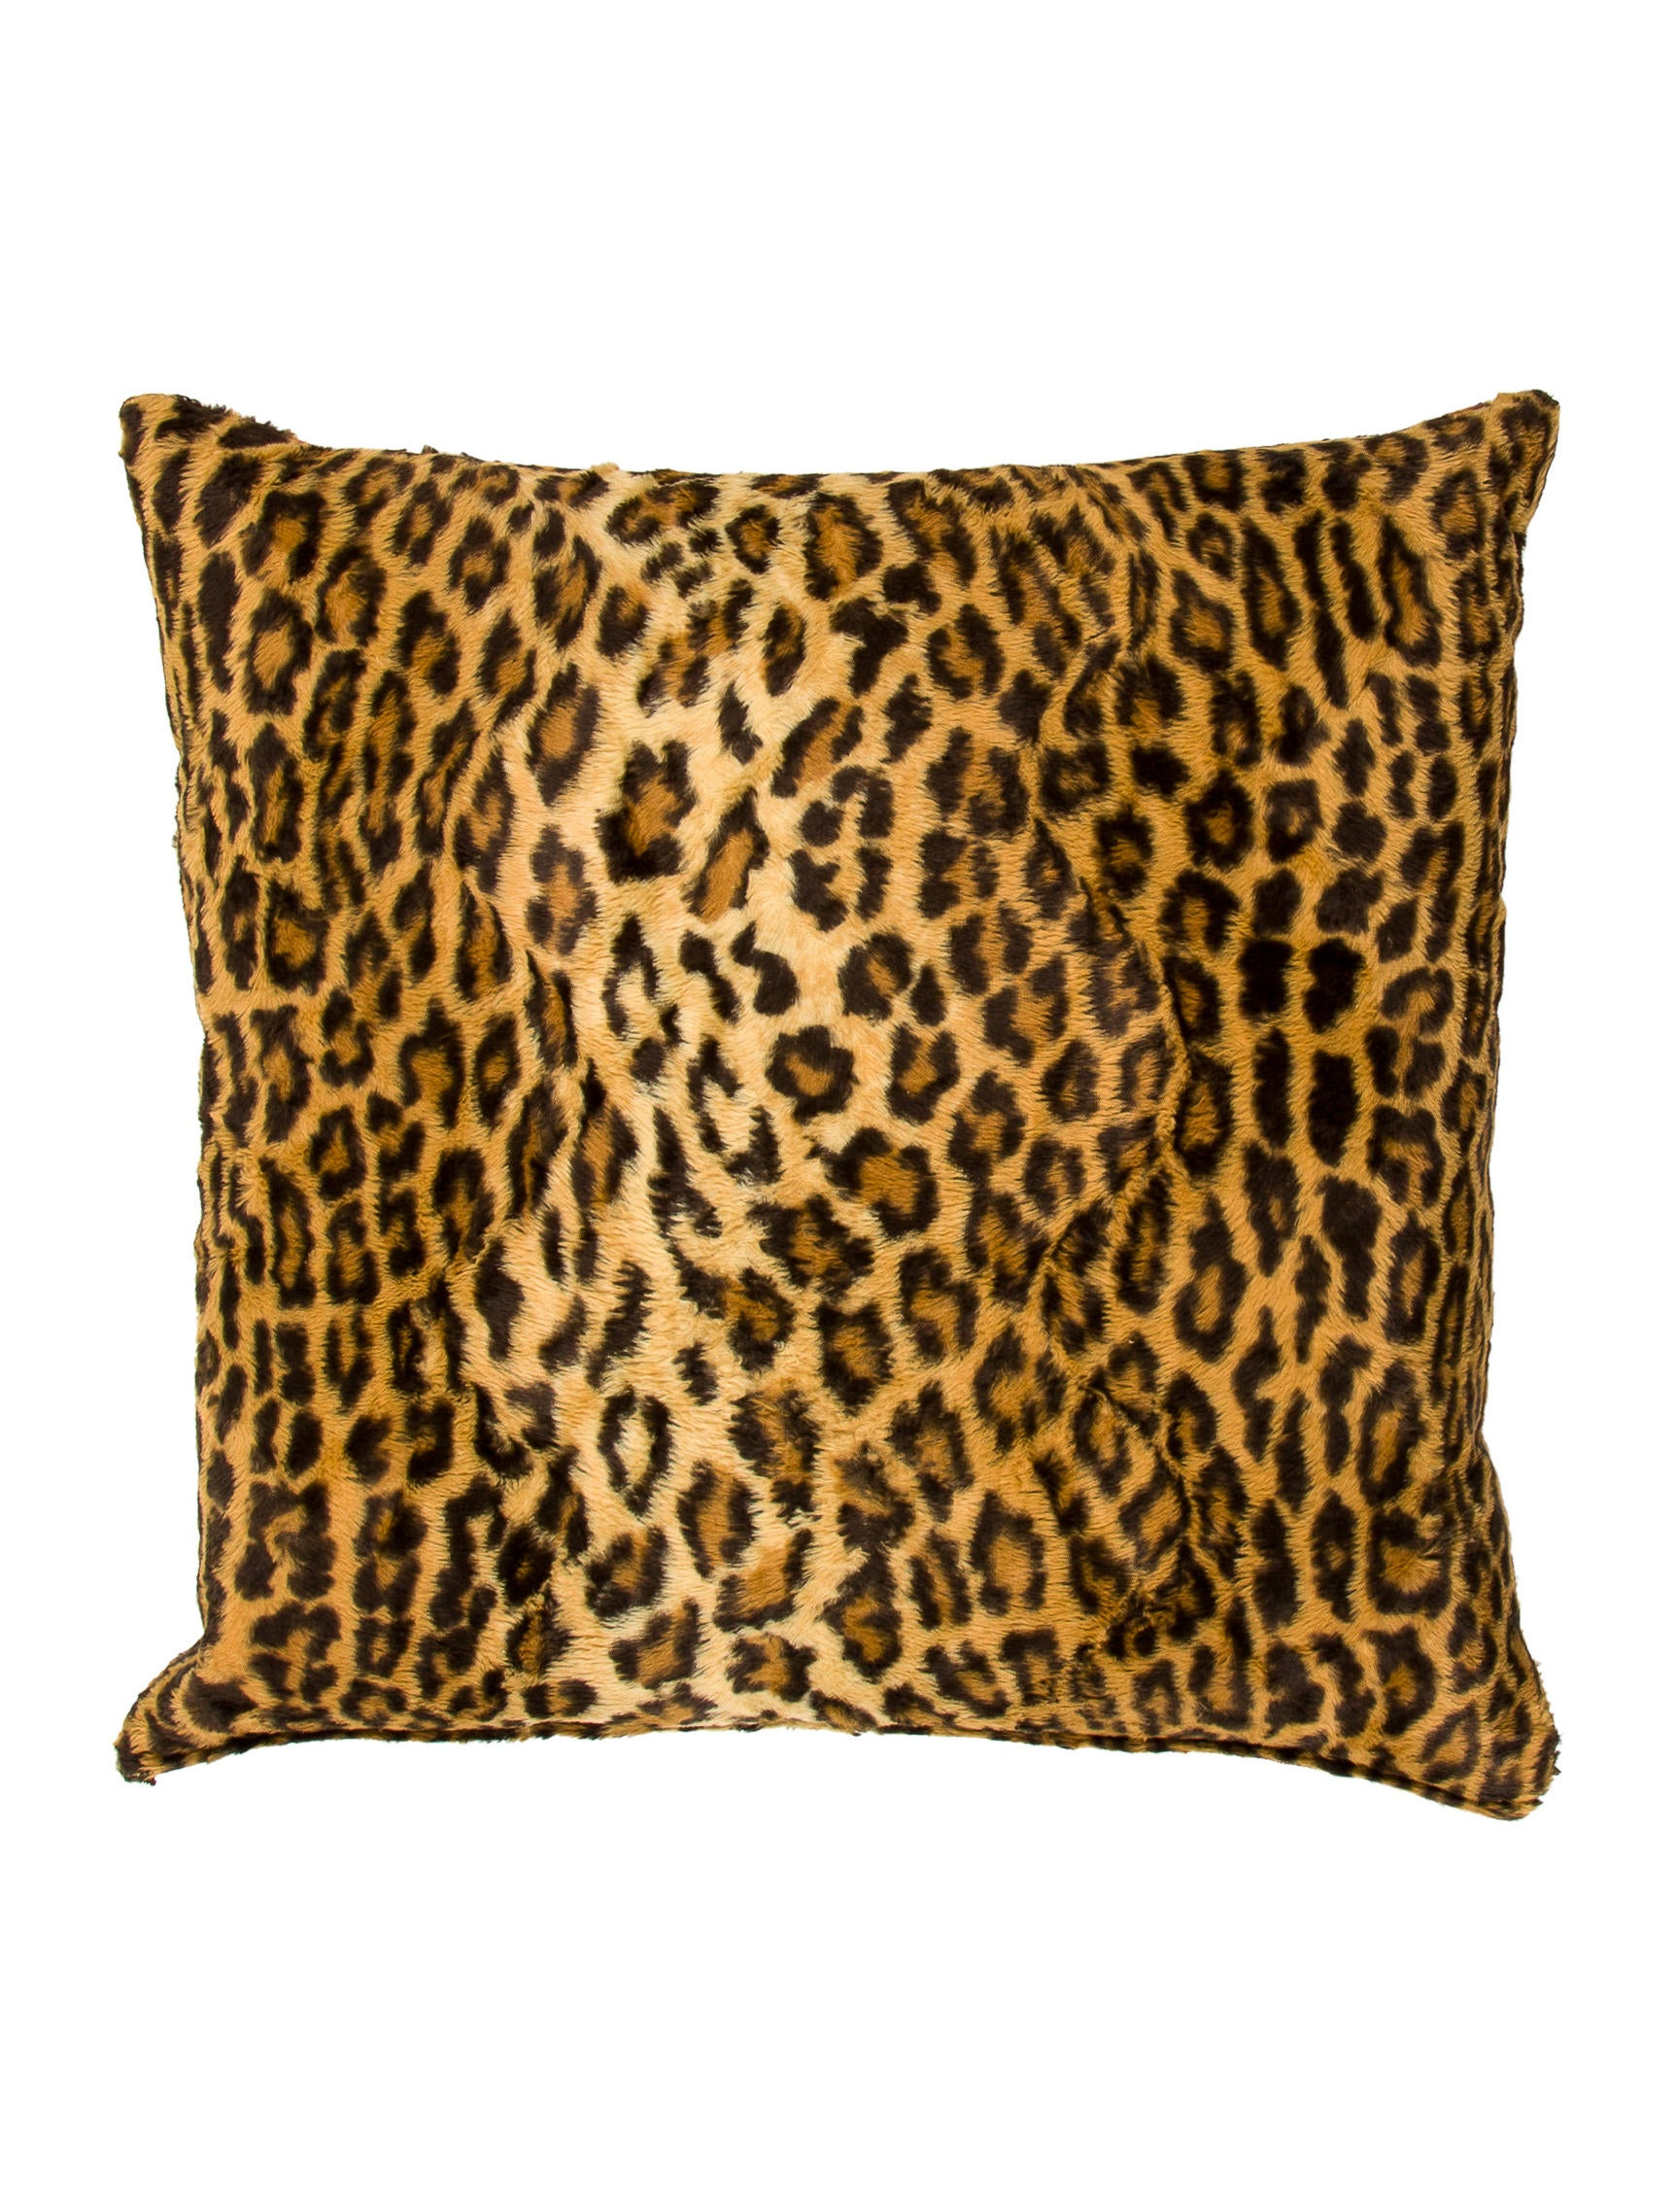 furs by snow products faux fur leopard pillow fabulous pillows